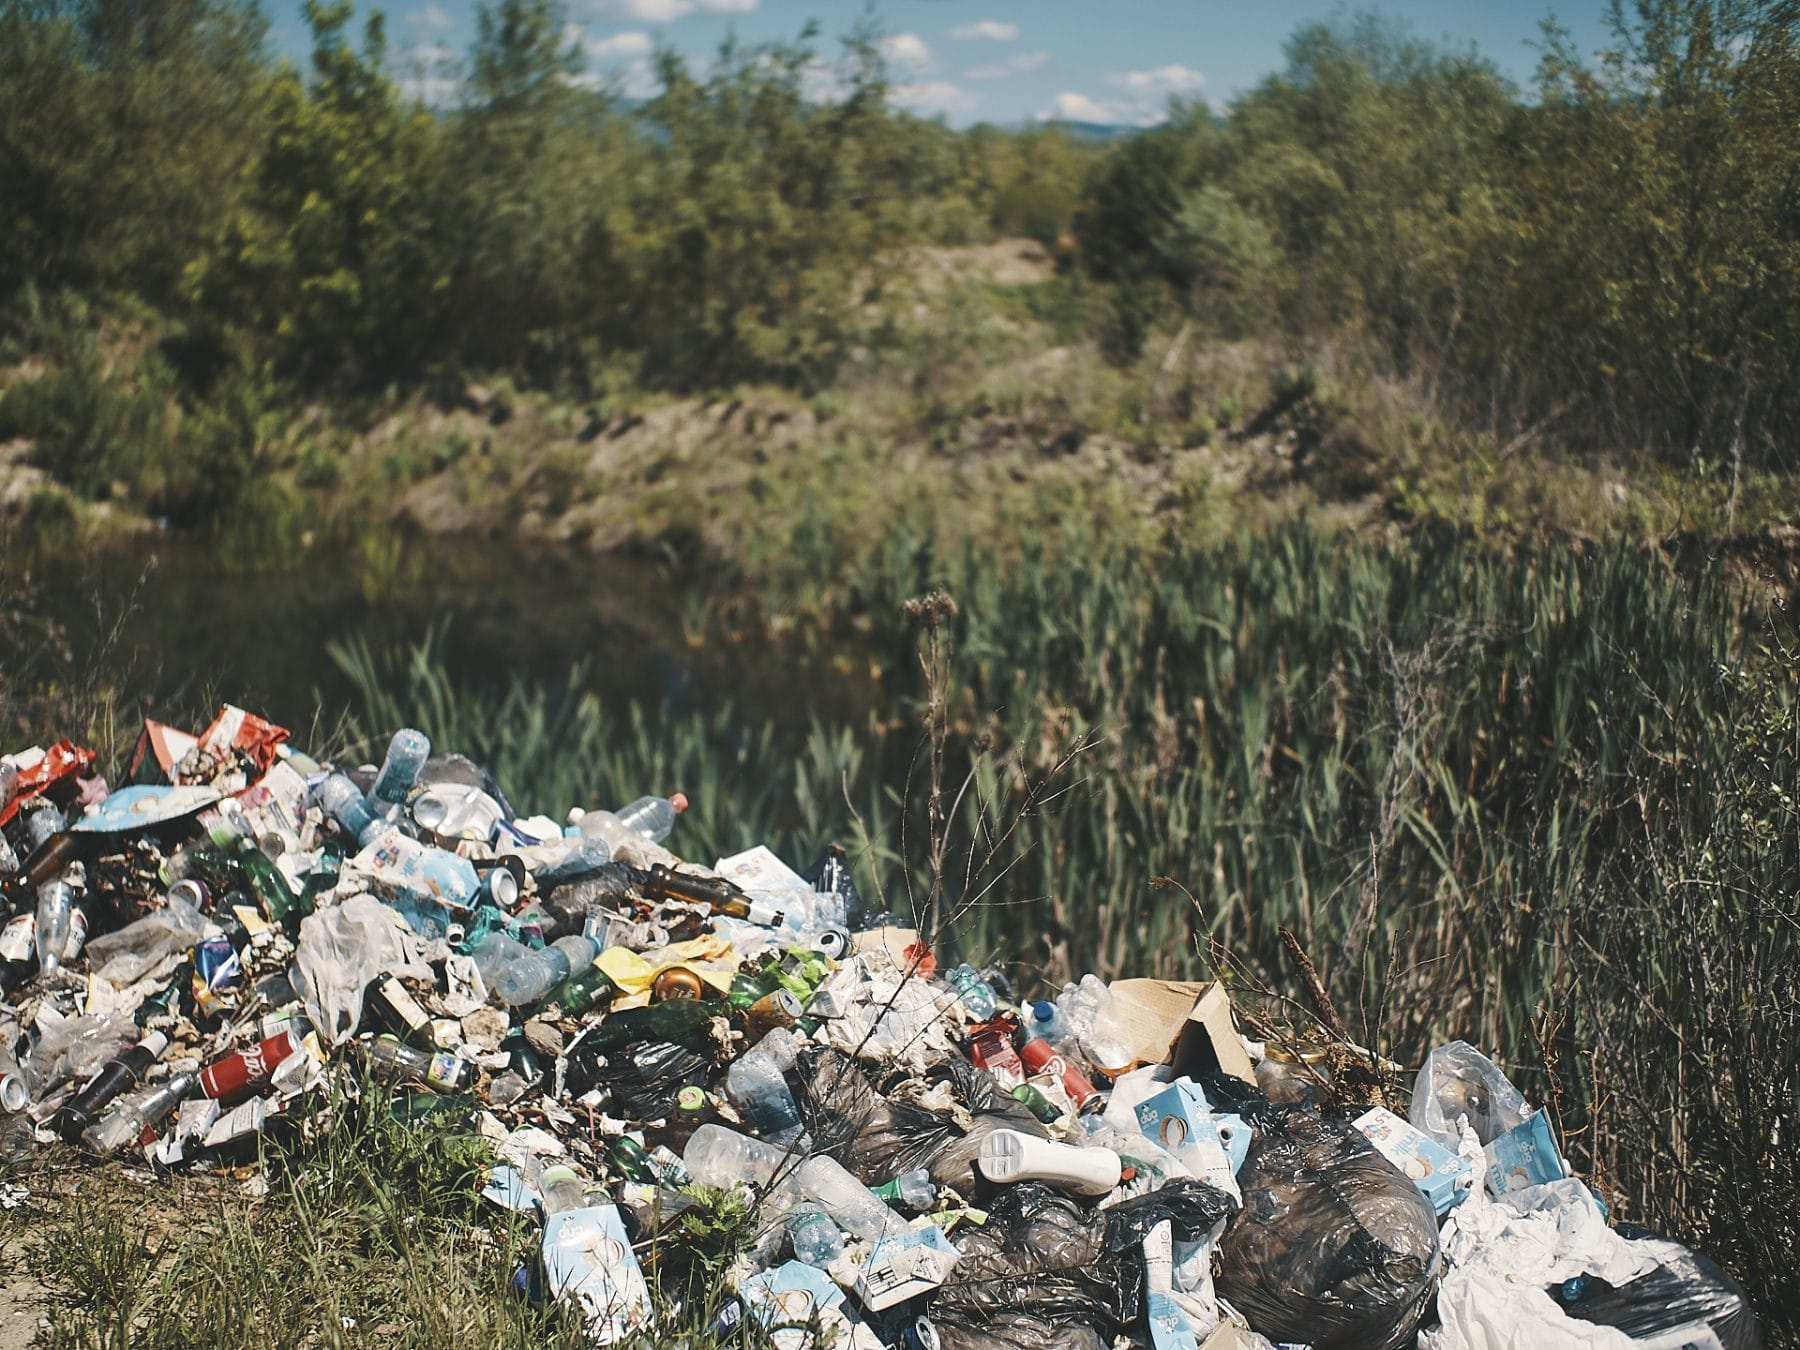 randonnée au kosovo - déchets - 1kg for the planet